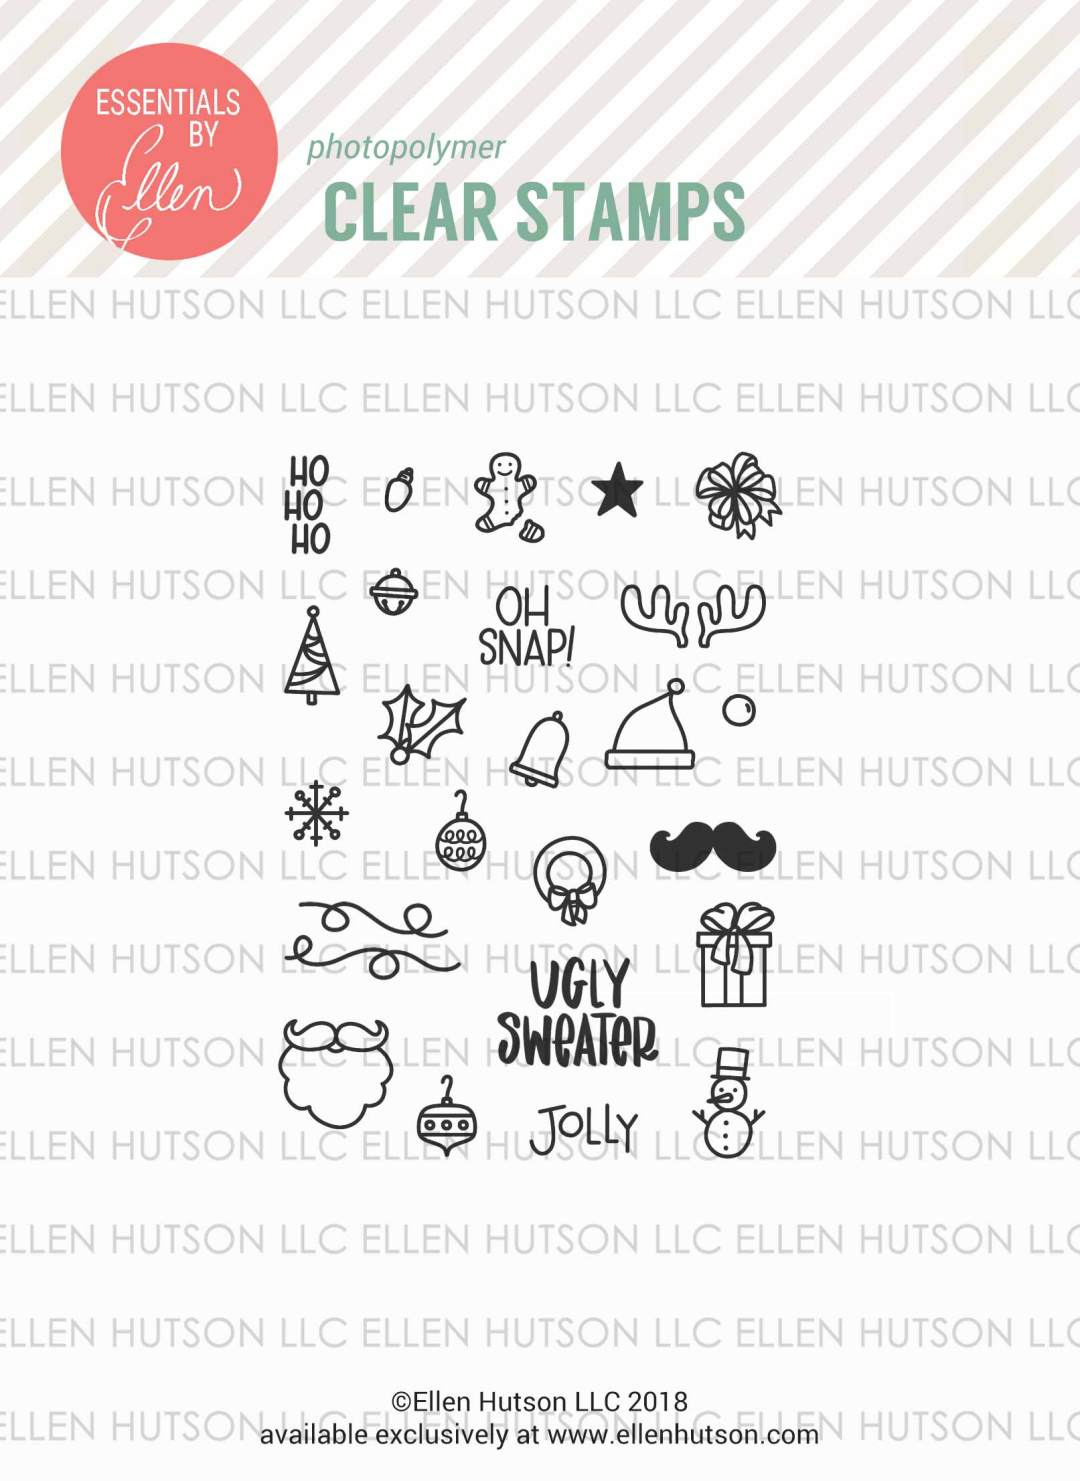 Essentials by Ellen Ugly Sweater Accessories stamps